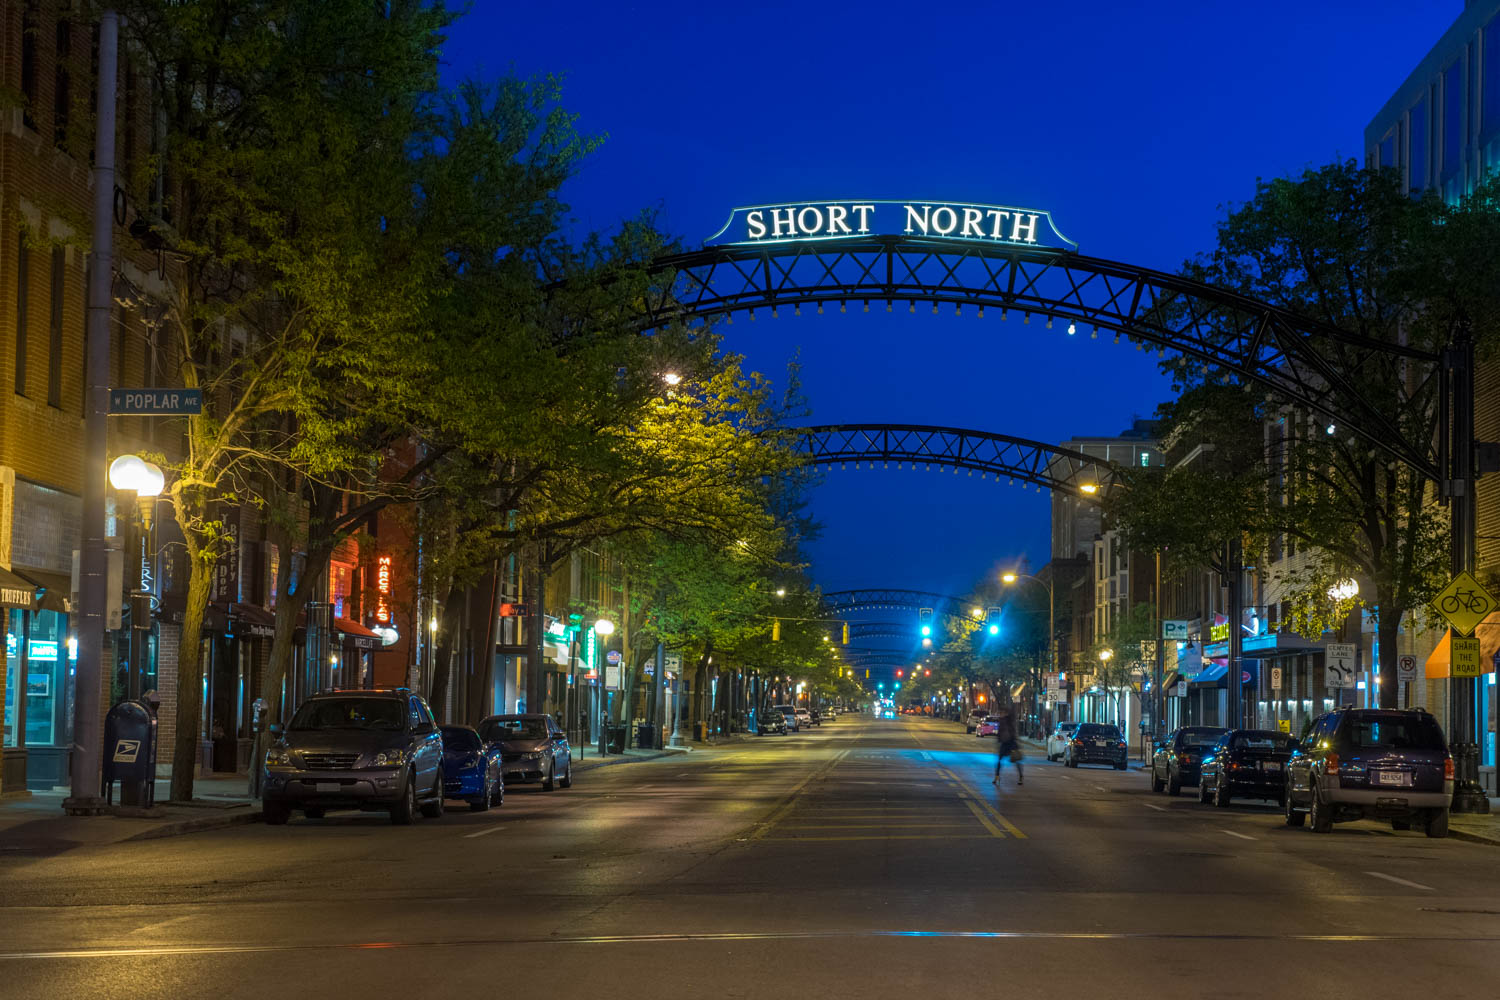 Short North.